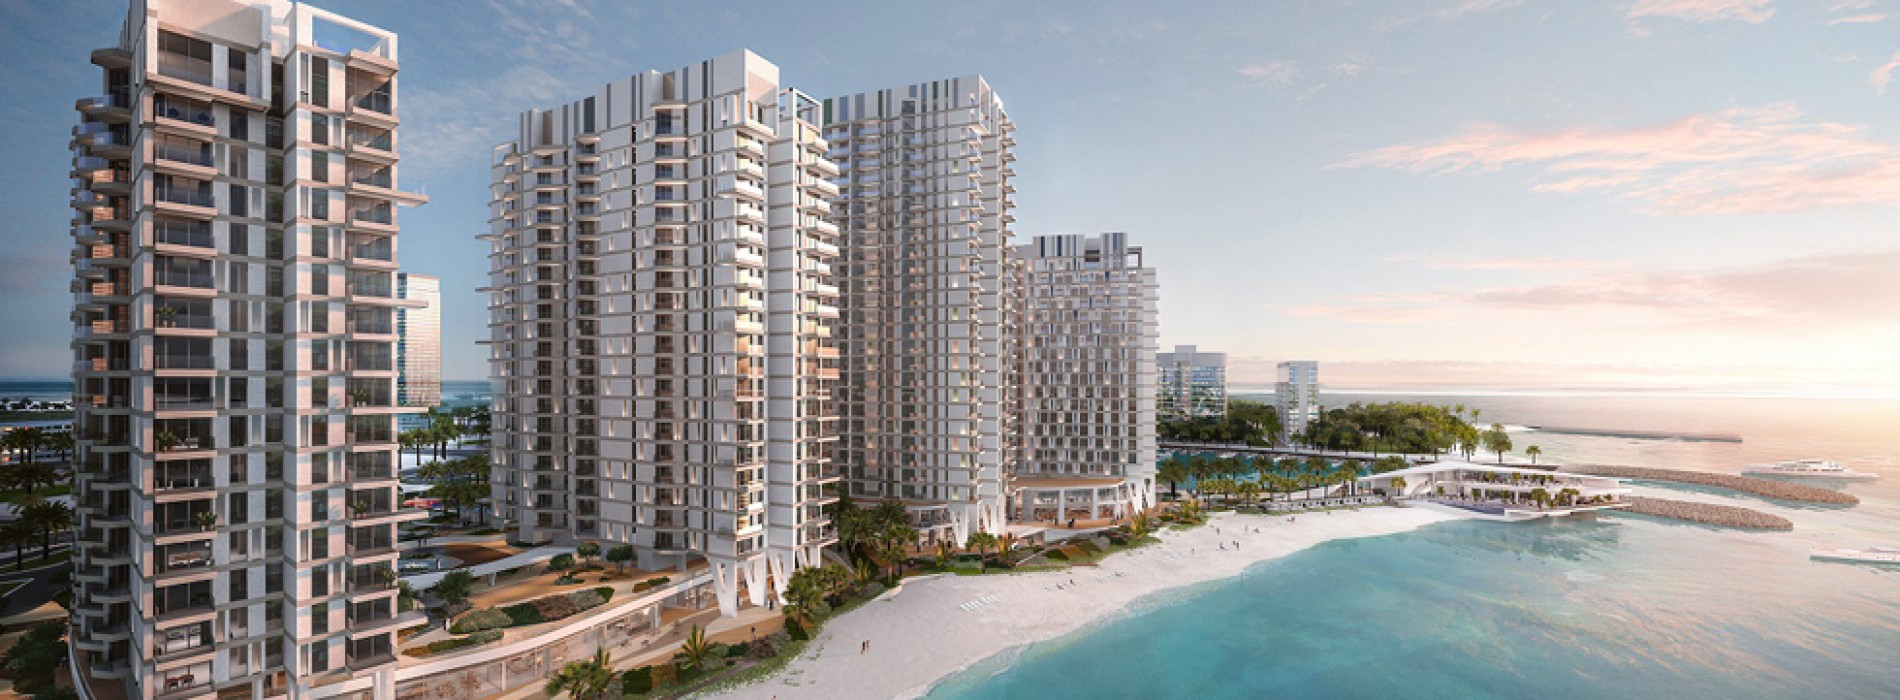 ALDAR APPOINTS EHG'S VIDA HOTELS AND RESORTS TO OPERATE ICONIC URBAN RESORT ON ABU DHABI'S REEM ISLAND